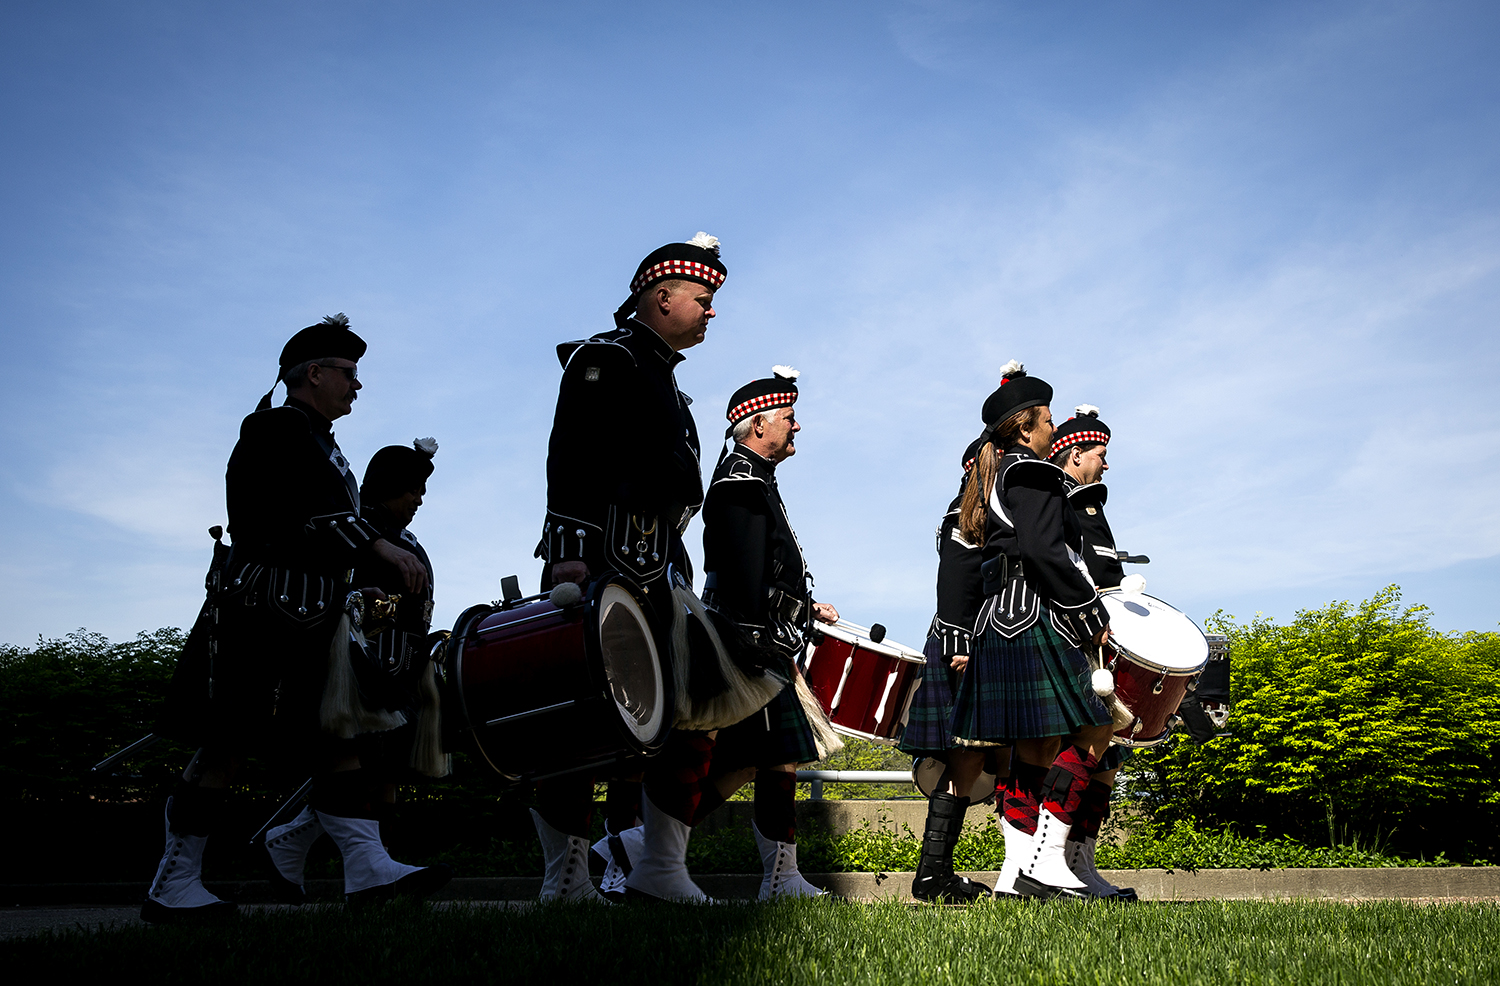 "Members of the Associated Firefighters of Illinois Honor Guard bagpipes walk toward the start of the 25th Annual Illinois Fallen Firefighter Memorial Tuesday, May 8, 2018 at the Firefighter's Memorial on the Capitol grounds in Springfield, Ill. Firefighters and their families from across the state gathered in Springfield to remember those who have given their lives in the line of duty, which this year include firefighters John ""Mike"" Cummins of the Homer Fire Protection District and Lawrence Matthews from the Village of Dolton Fire Department. Their families were presented with the Duty Death Gold Badge by state Fire Marshal Matt Perez. [Rich Saal/The State Journal-Register]"